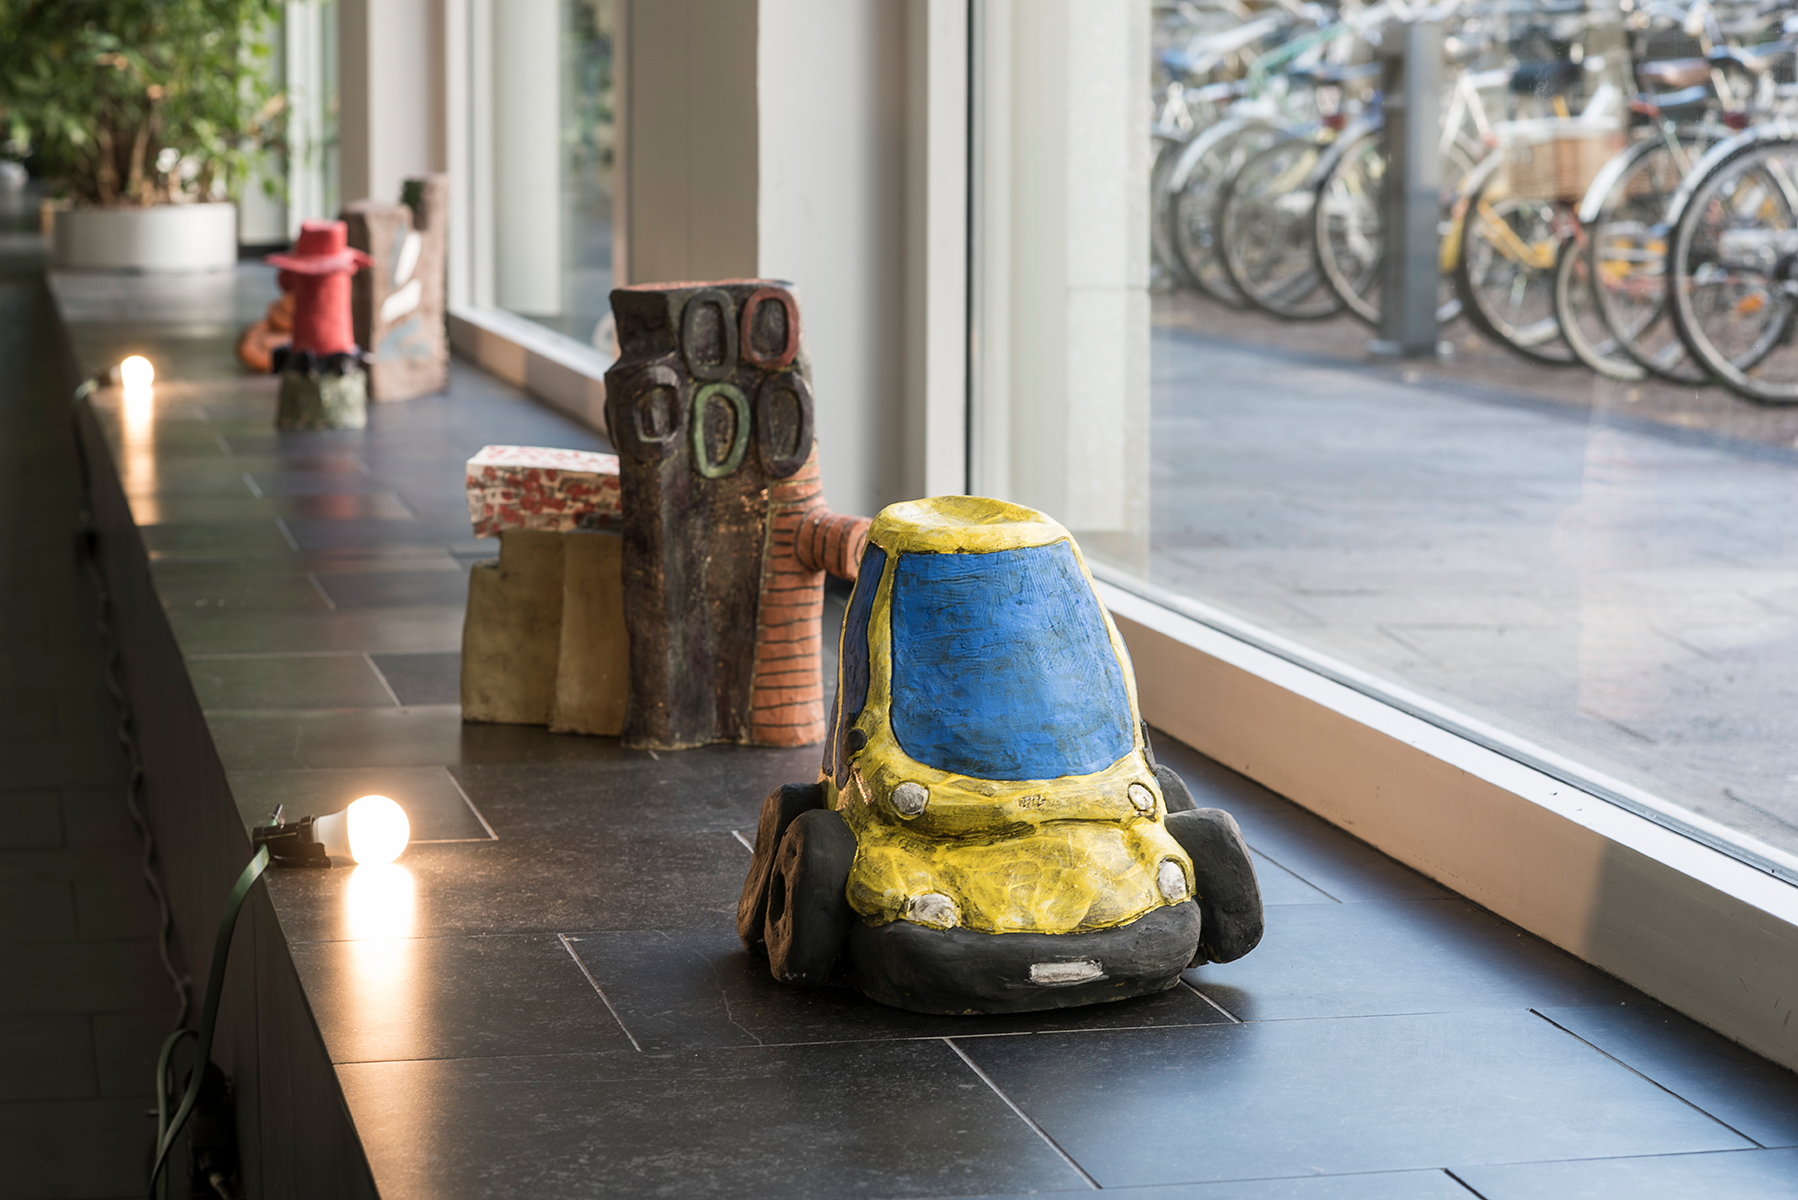 John Henshaw, Bolzano feels; Multipla99 2; both glazed ceramic, both 2016